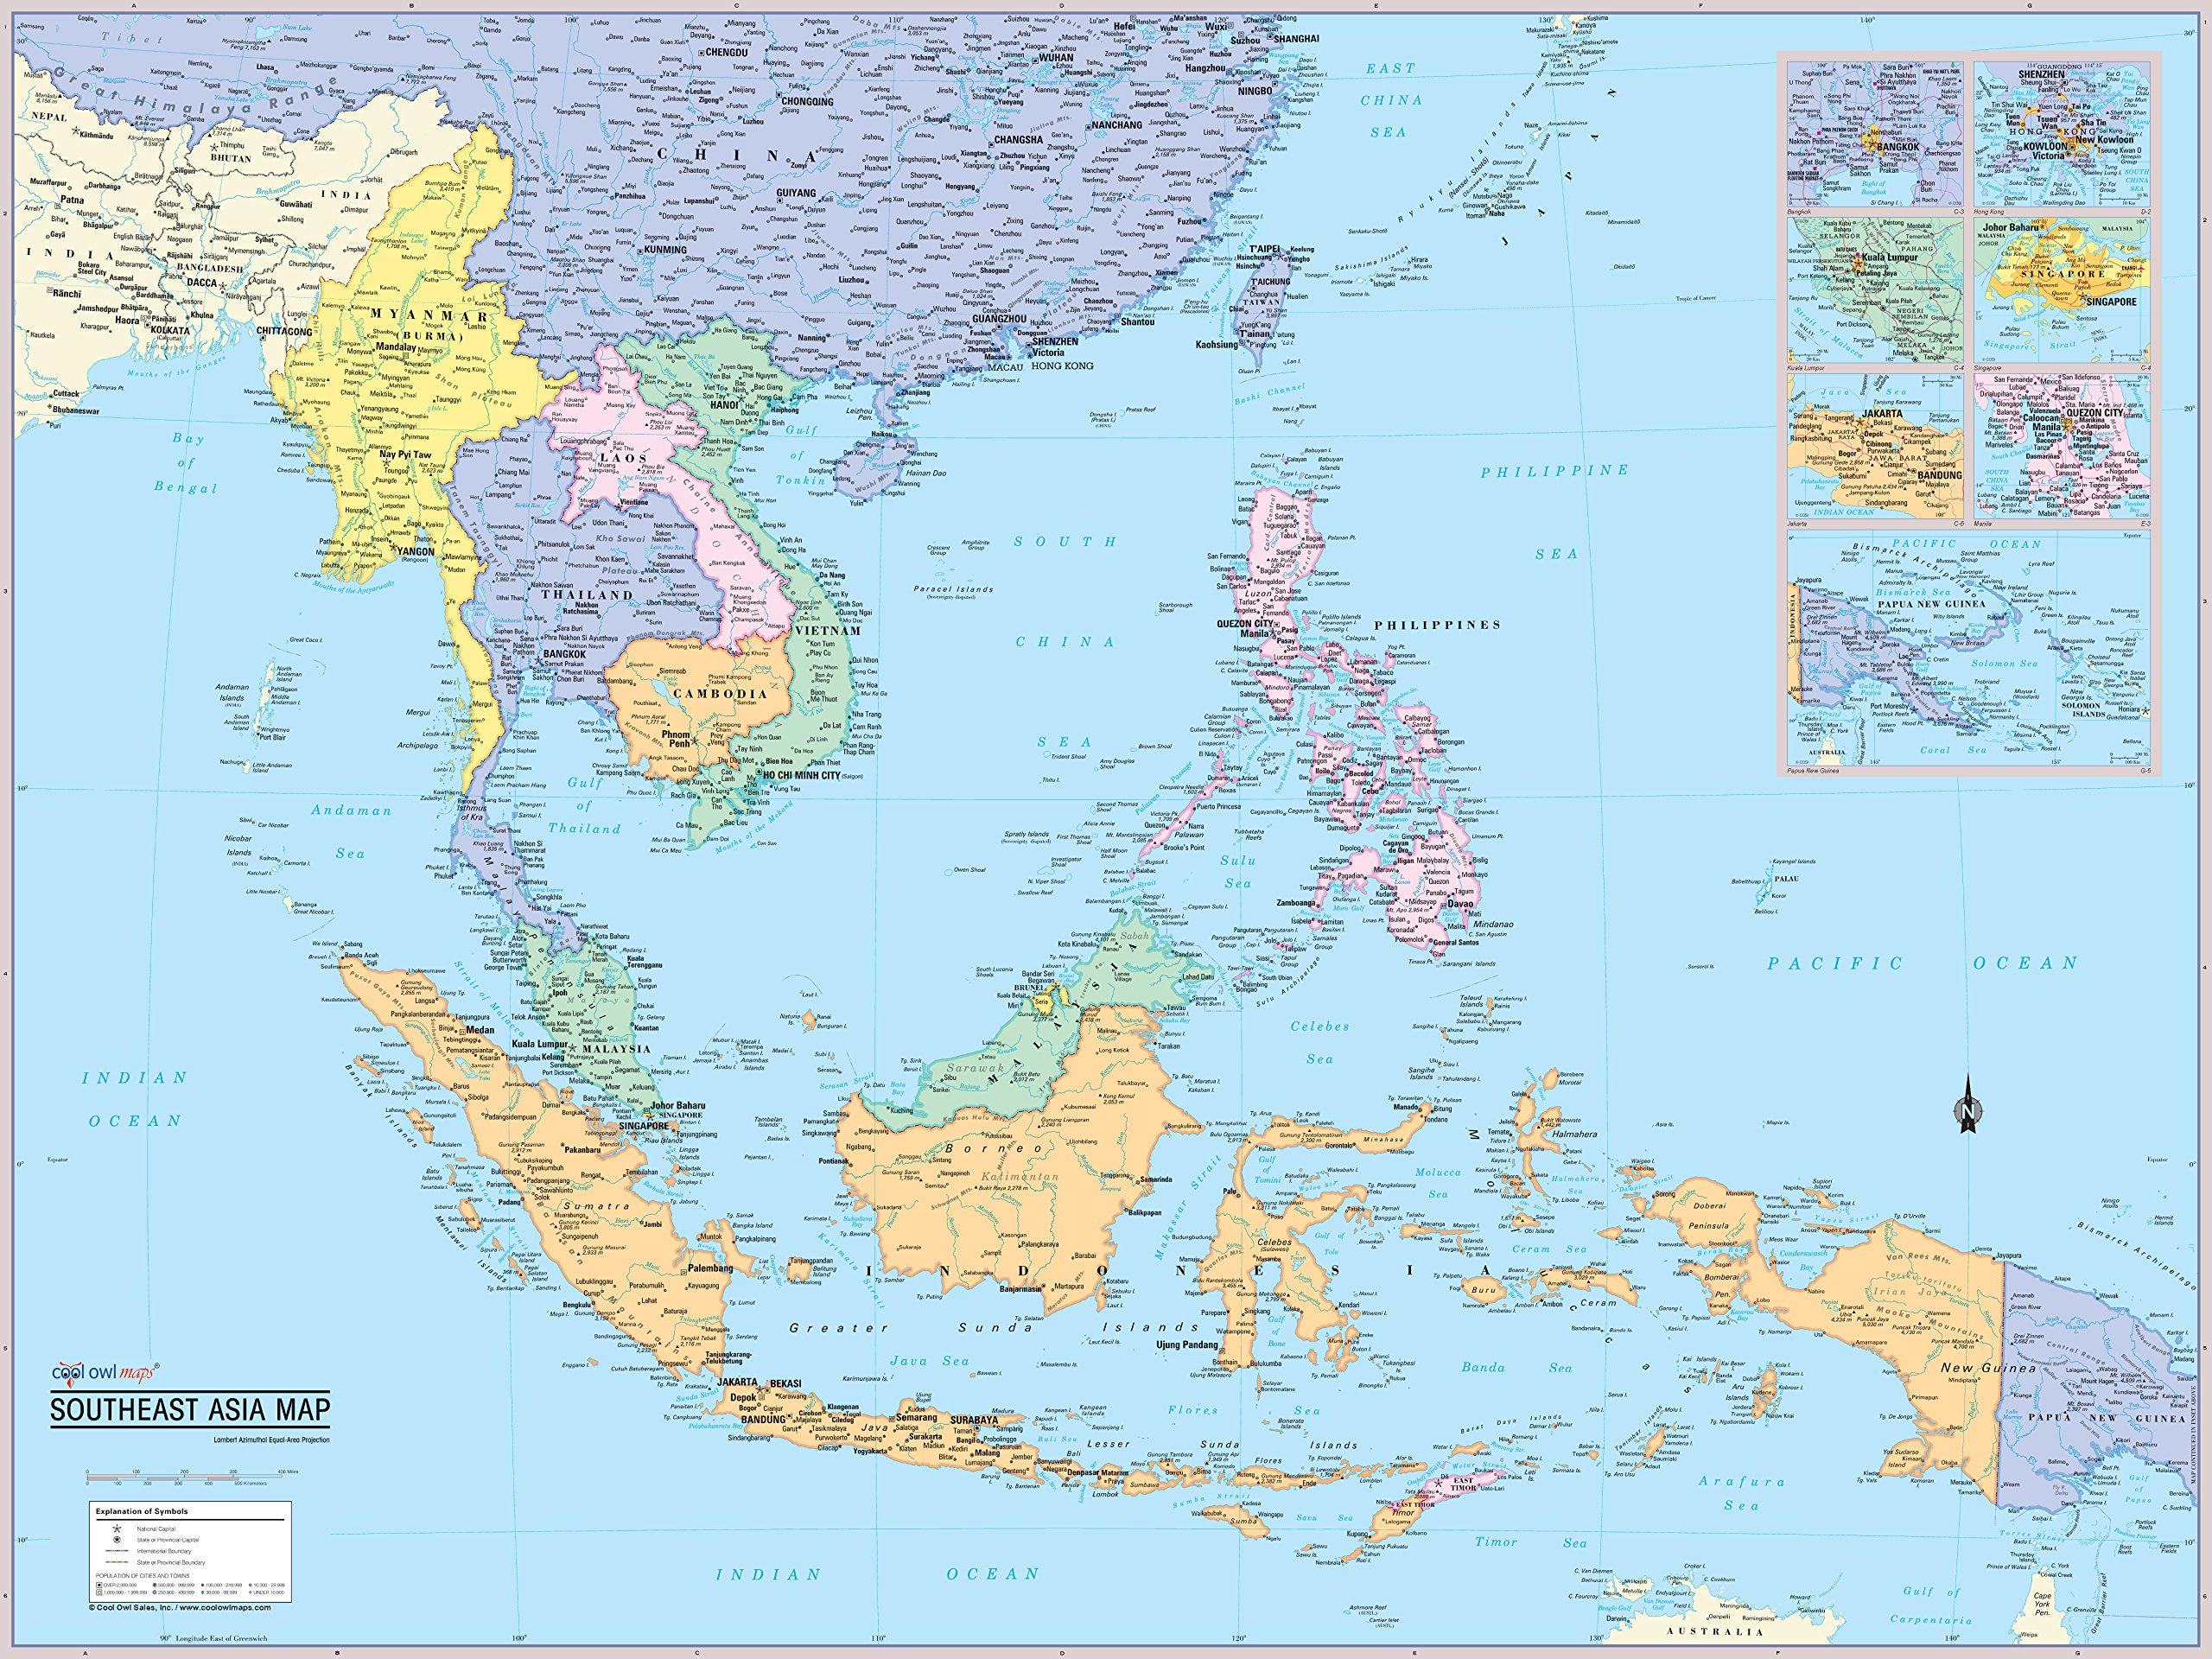 Cool Owl Maps Southeast Asia Wall Map Poster Laminated 32''x24''